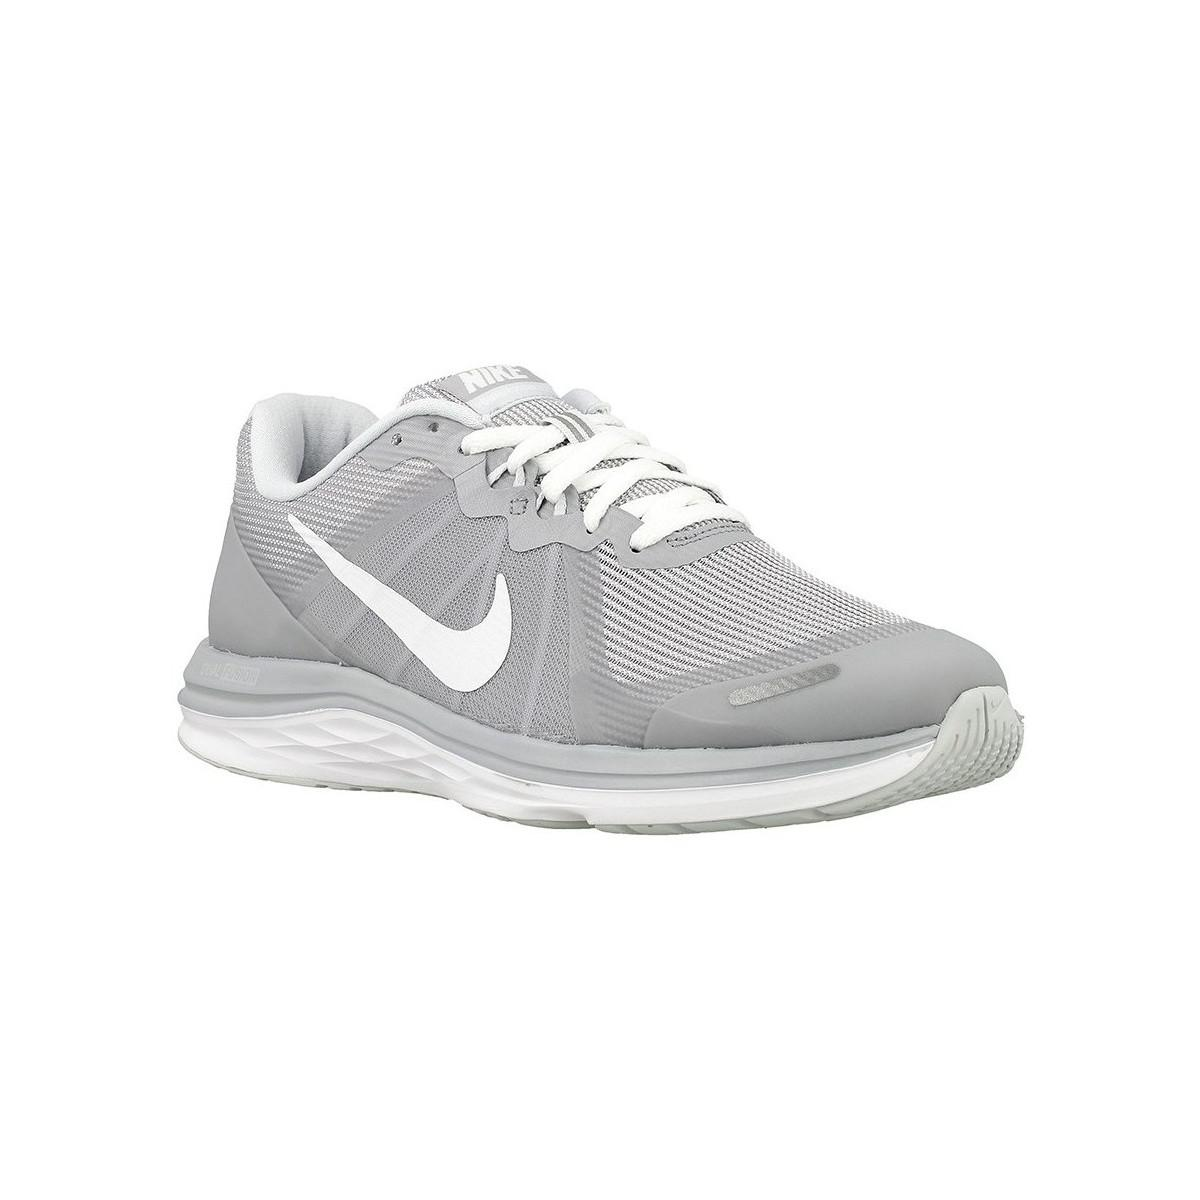 Nike Wmns Dual Fusion X Women s Running Trainers In Grey in Gray - Lyst 786b656dbe